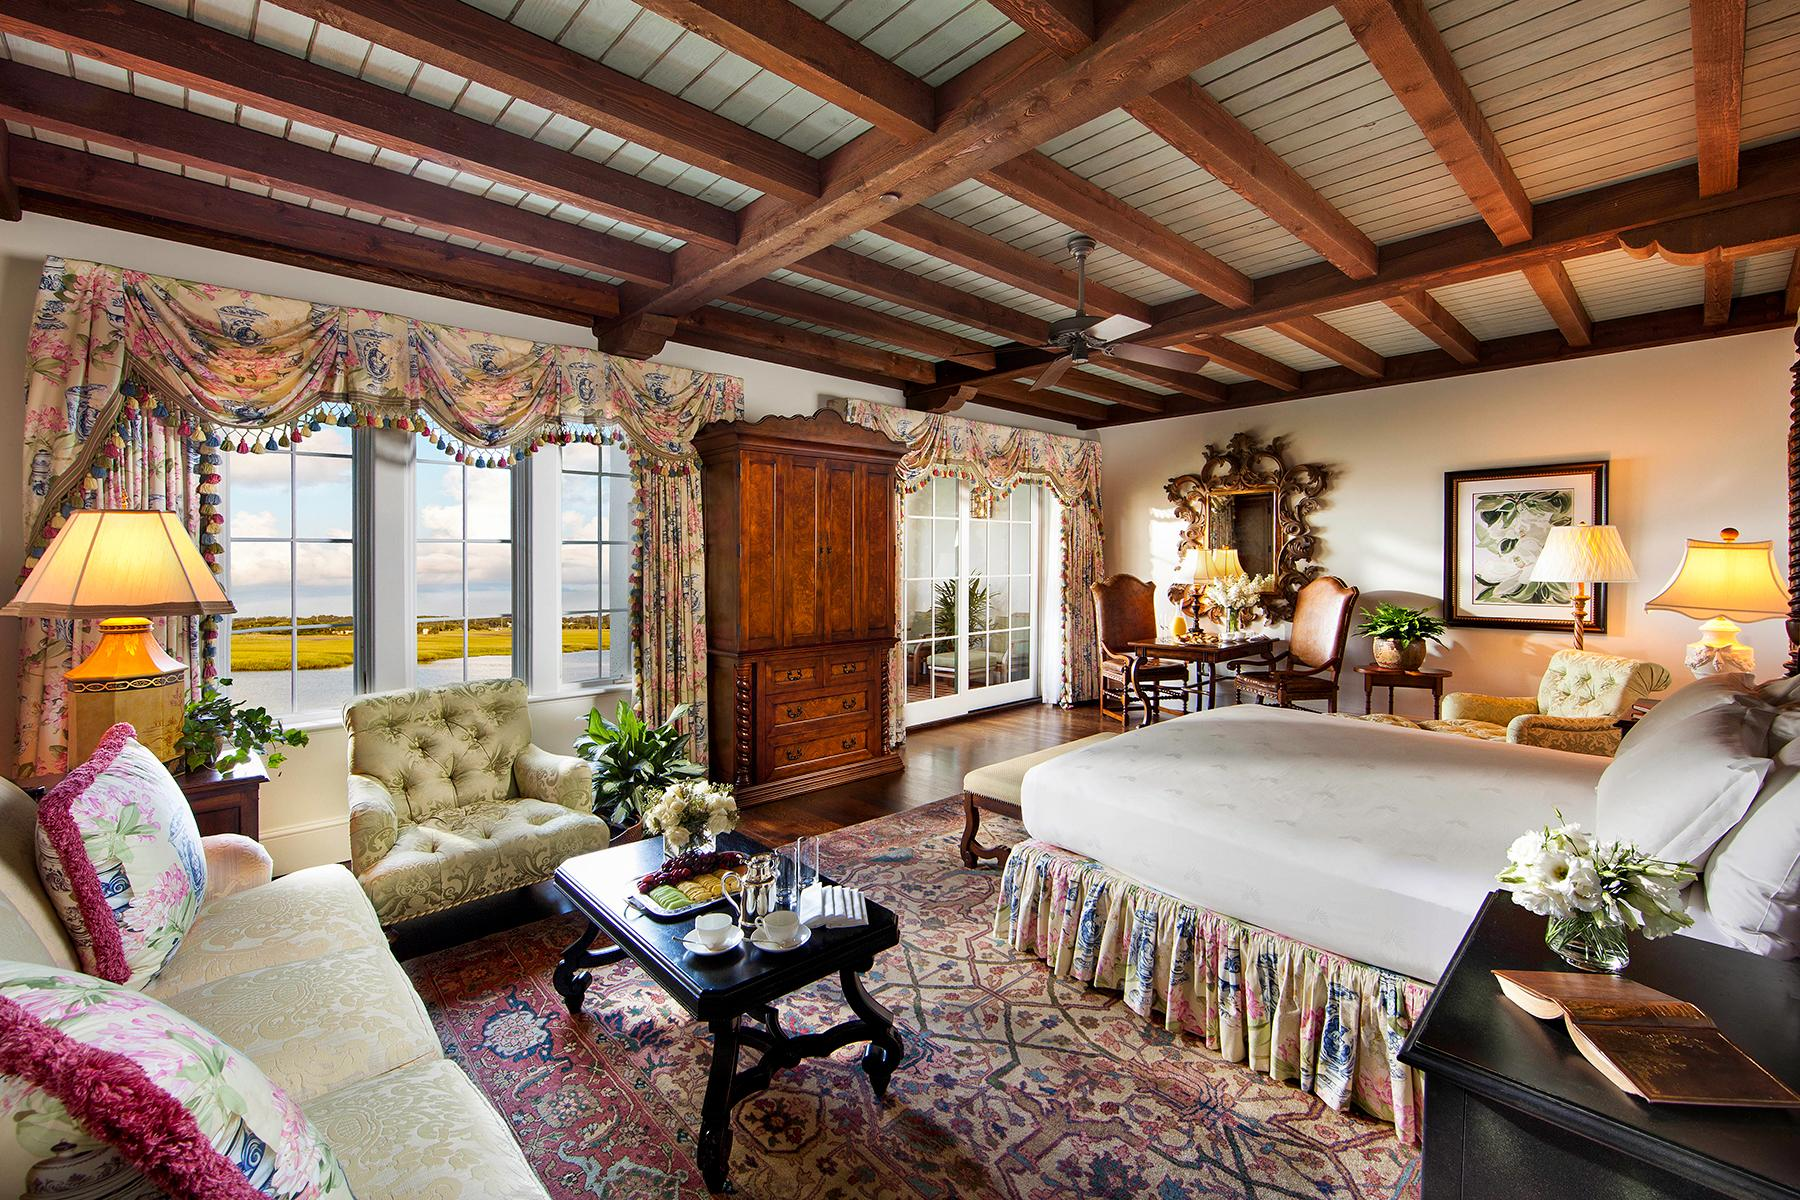 11_ZikaFreeBabymoons__SeaIslandGeorgia_Riverview_Room_at_The_Cloister